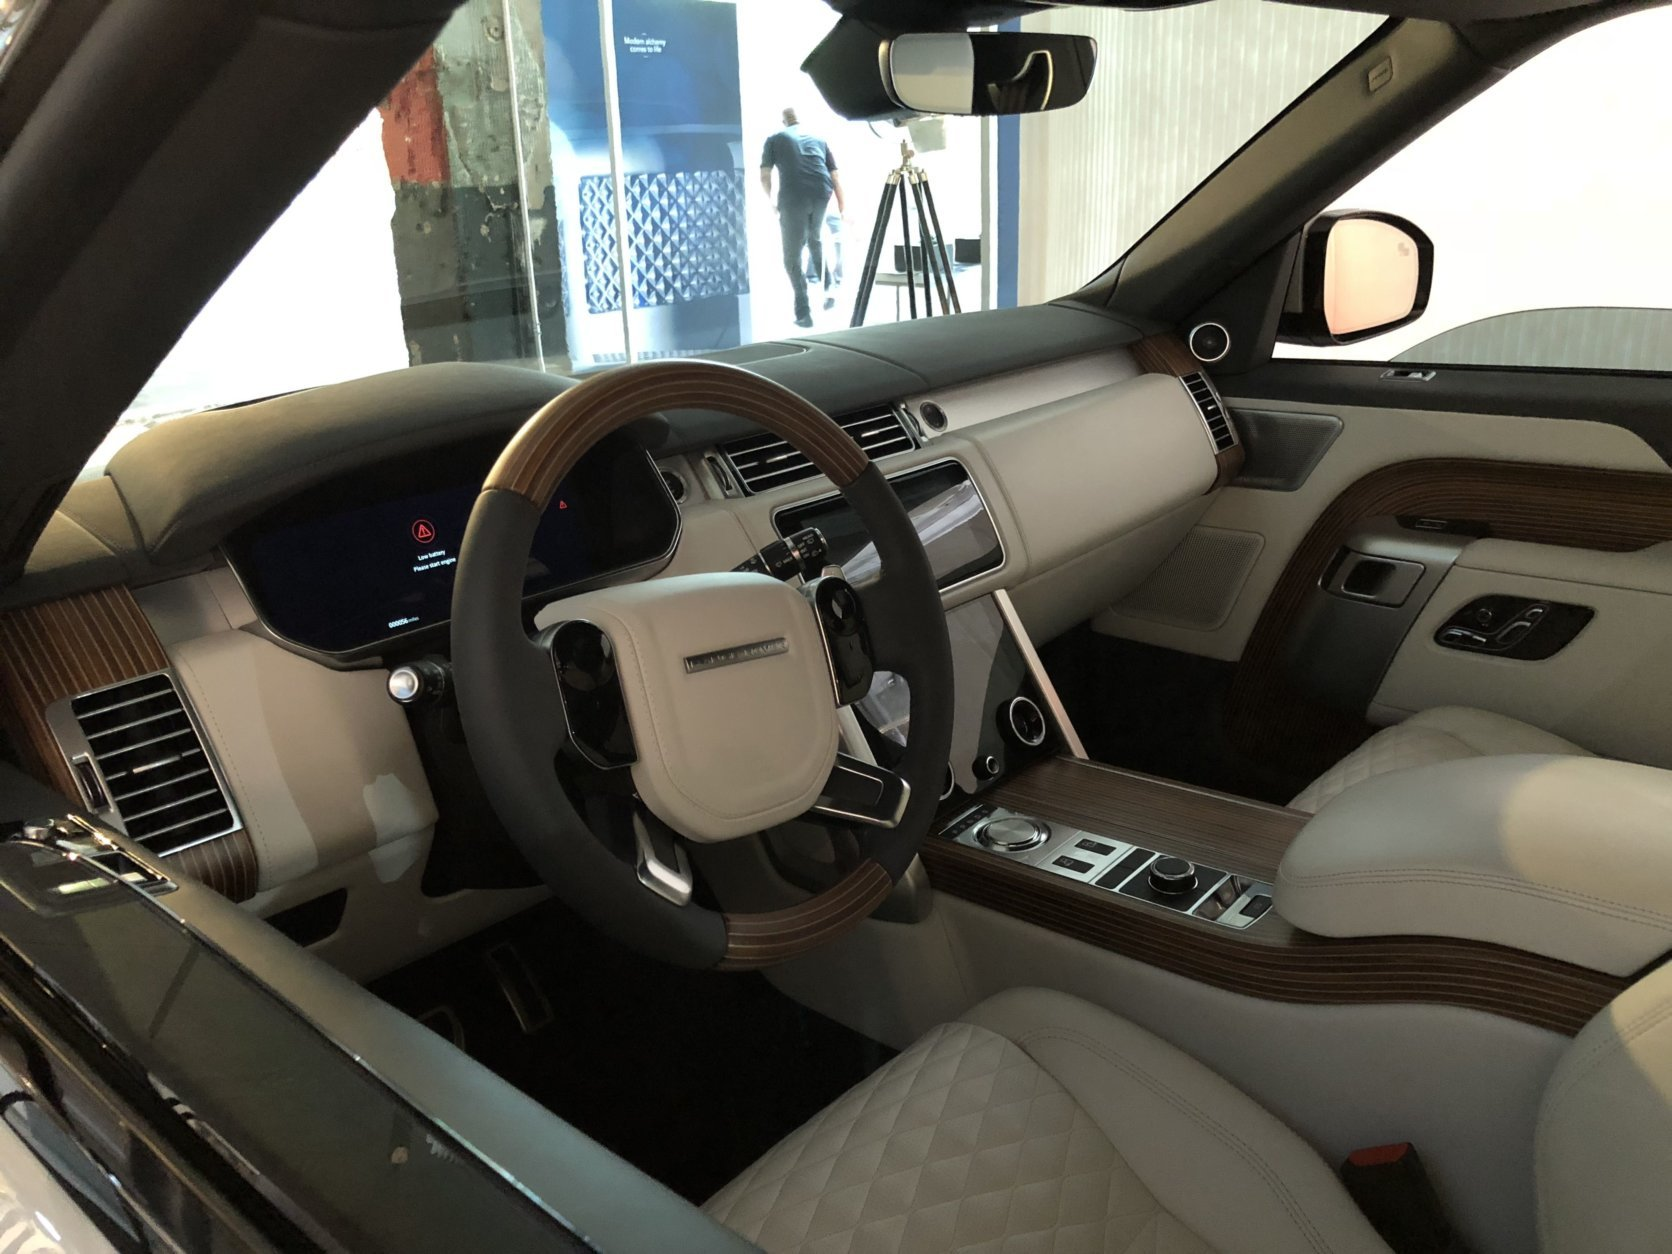 The interior of the Range Rover SV Coupe is very impressive and extremely luxurious, with a modern look but it has that coach-built feel with leather everywhere. (WTOP/Mike Parris)